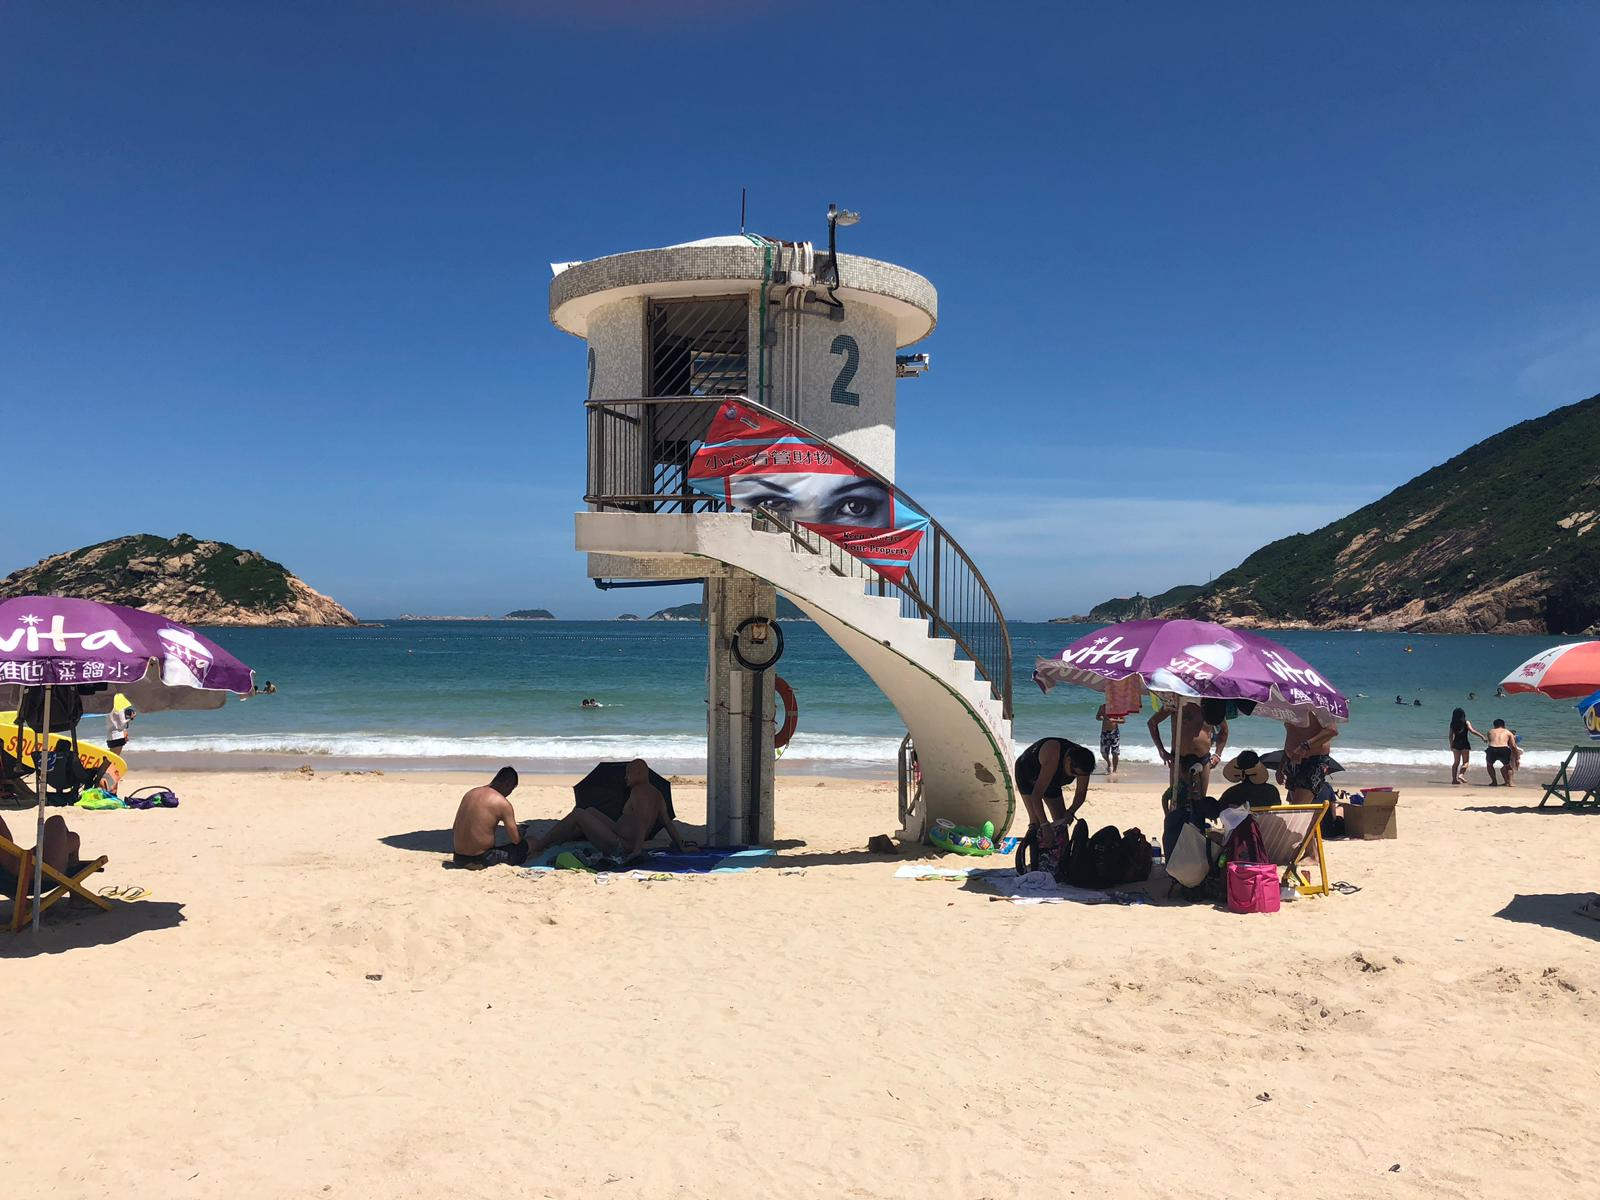 Lifeguard posts at Hong Kong's Shek O beach appeared to be empty Monday.